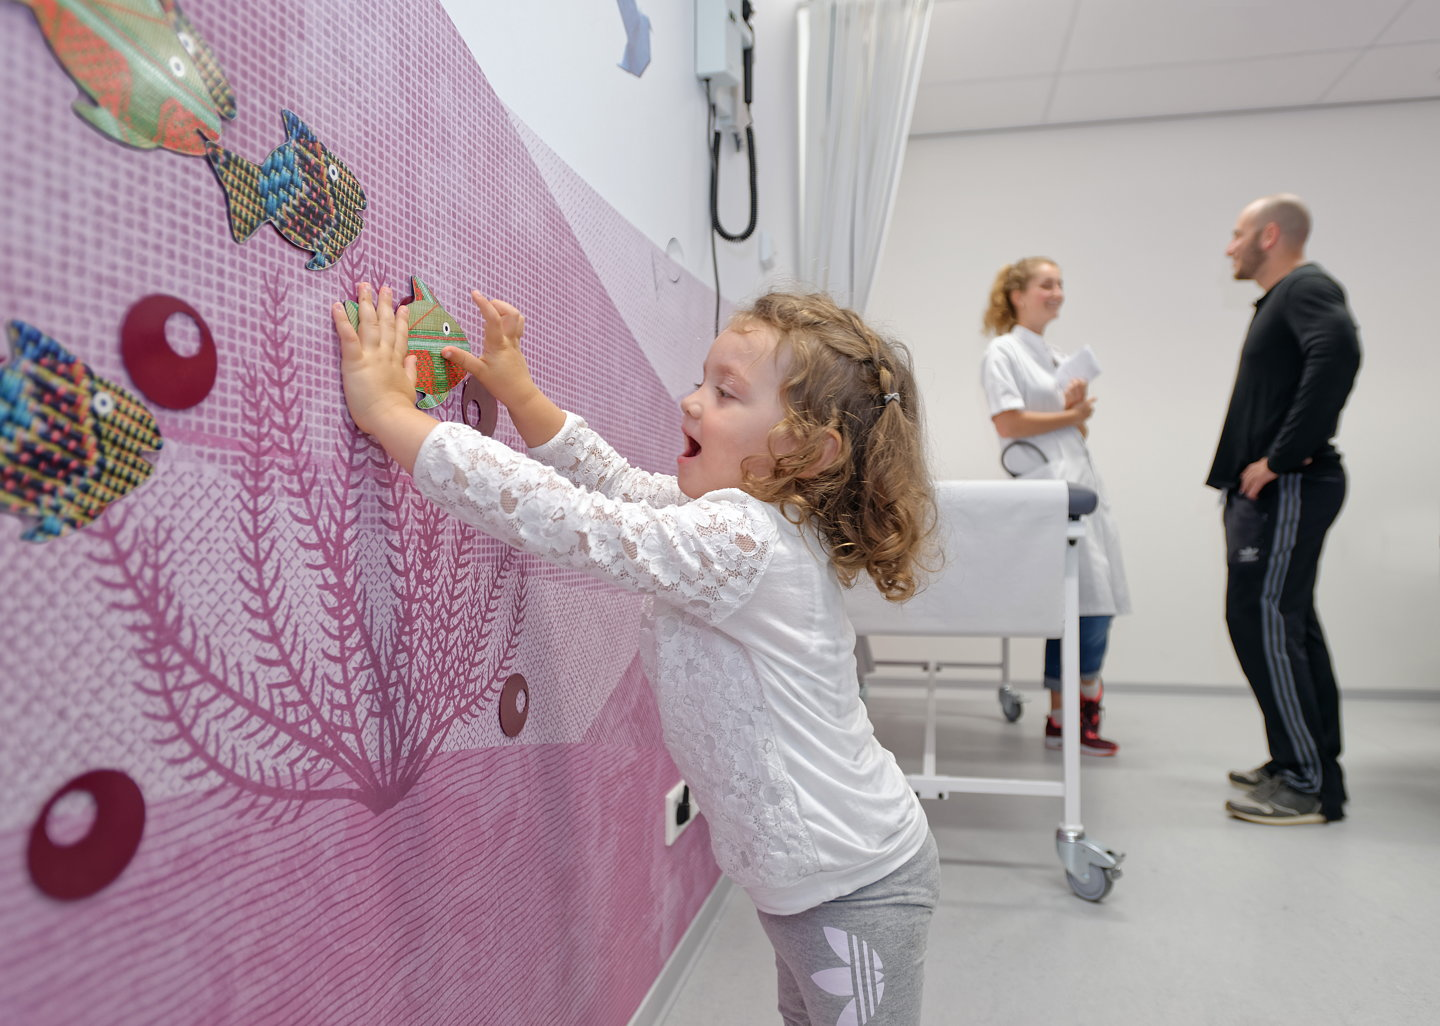 Juliana Childrens Hospital By Tinker Imagineers 11